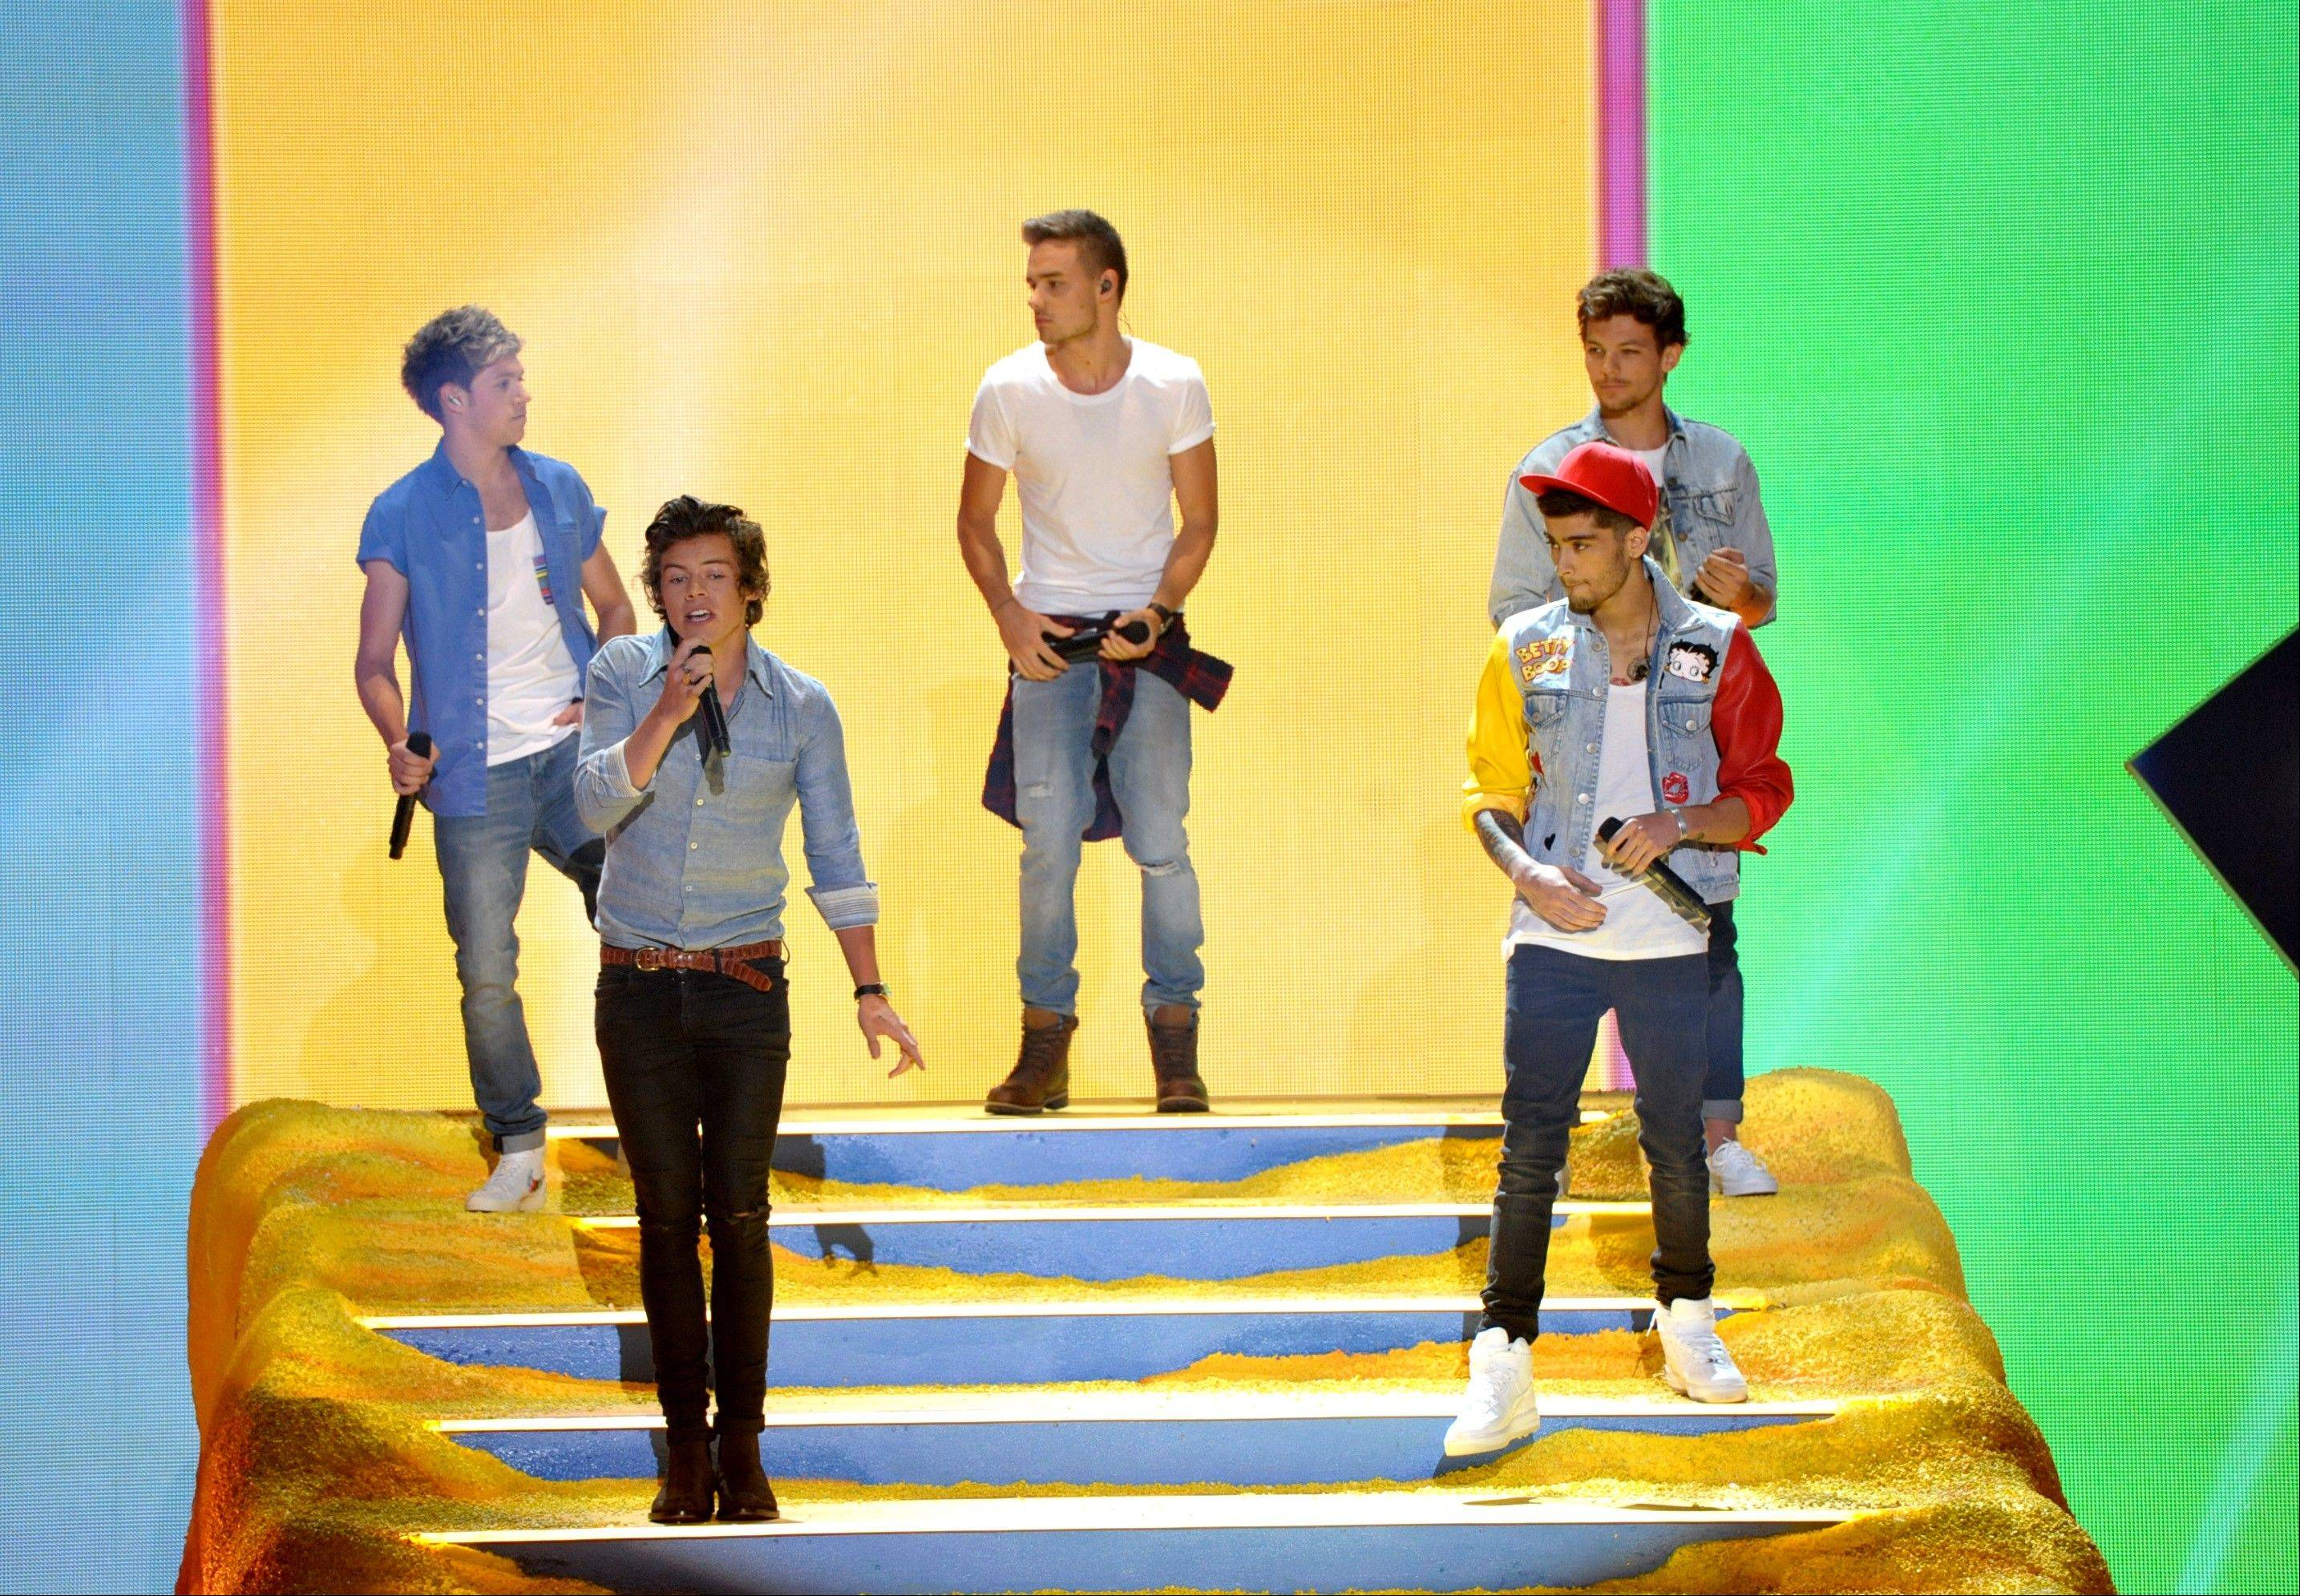 Niall Horan, from left, Harry Styles, Liam Payne, Zayn Malik and Louis Tomlinson of the musical group One Direction perform on stage at the Teen Choice Awards.